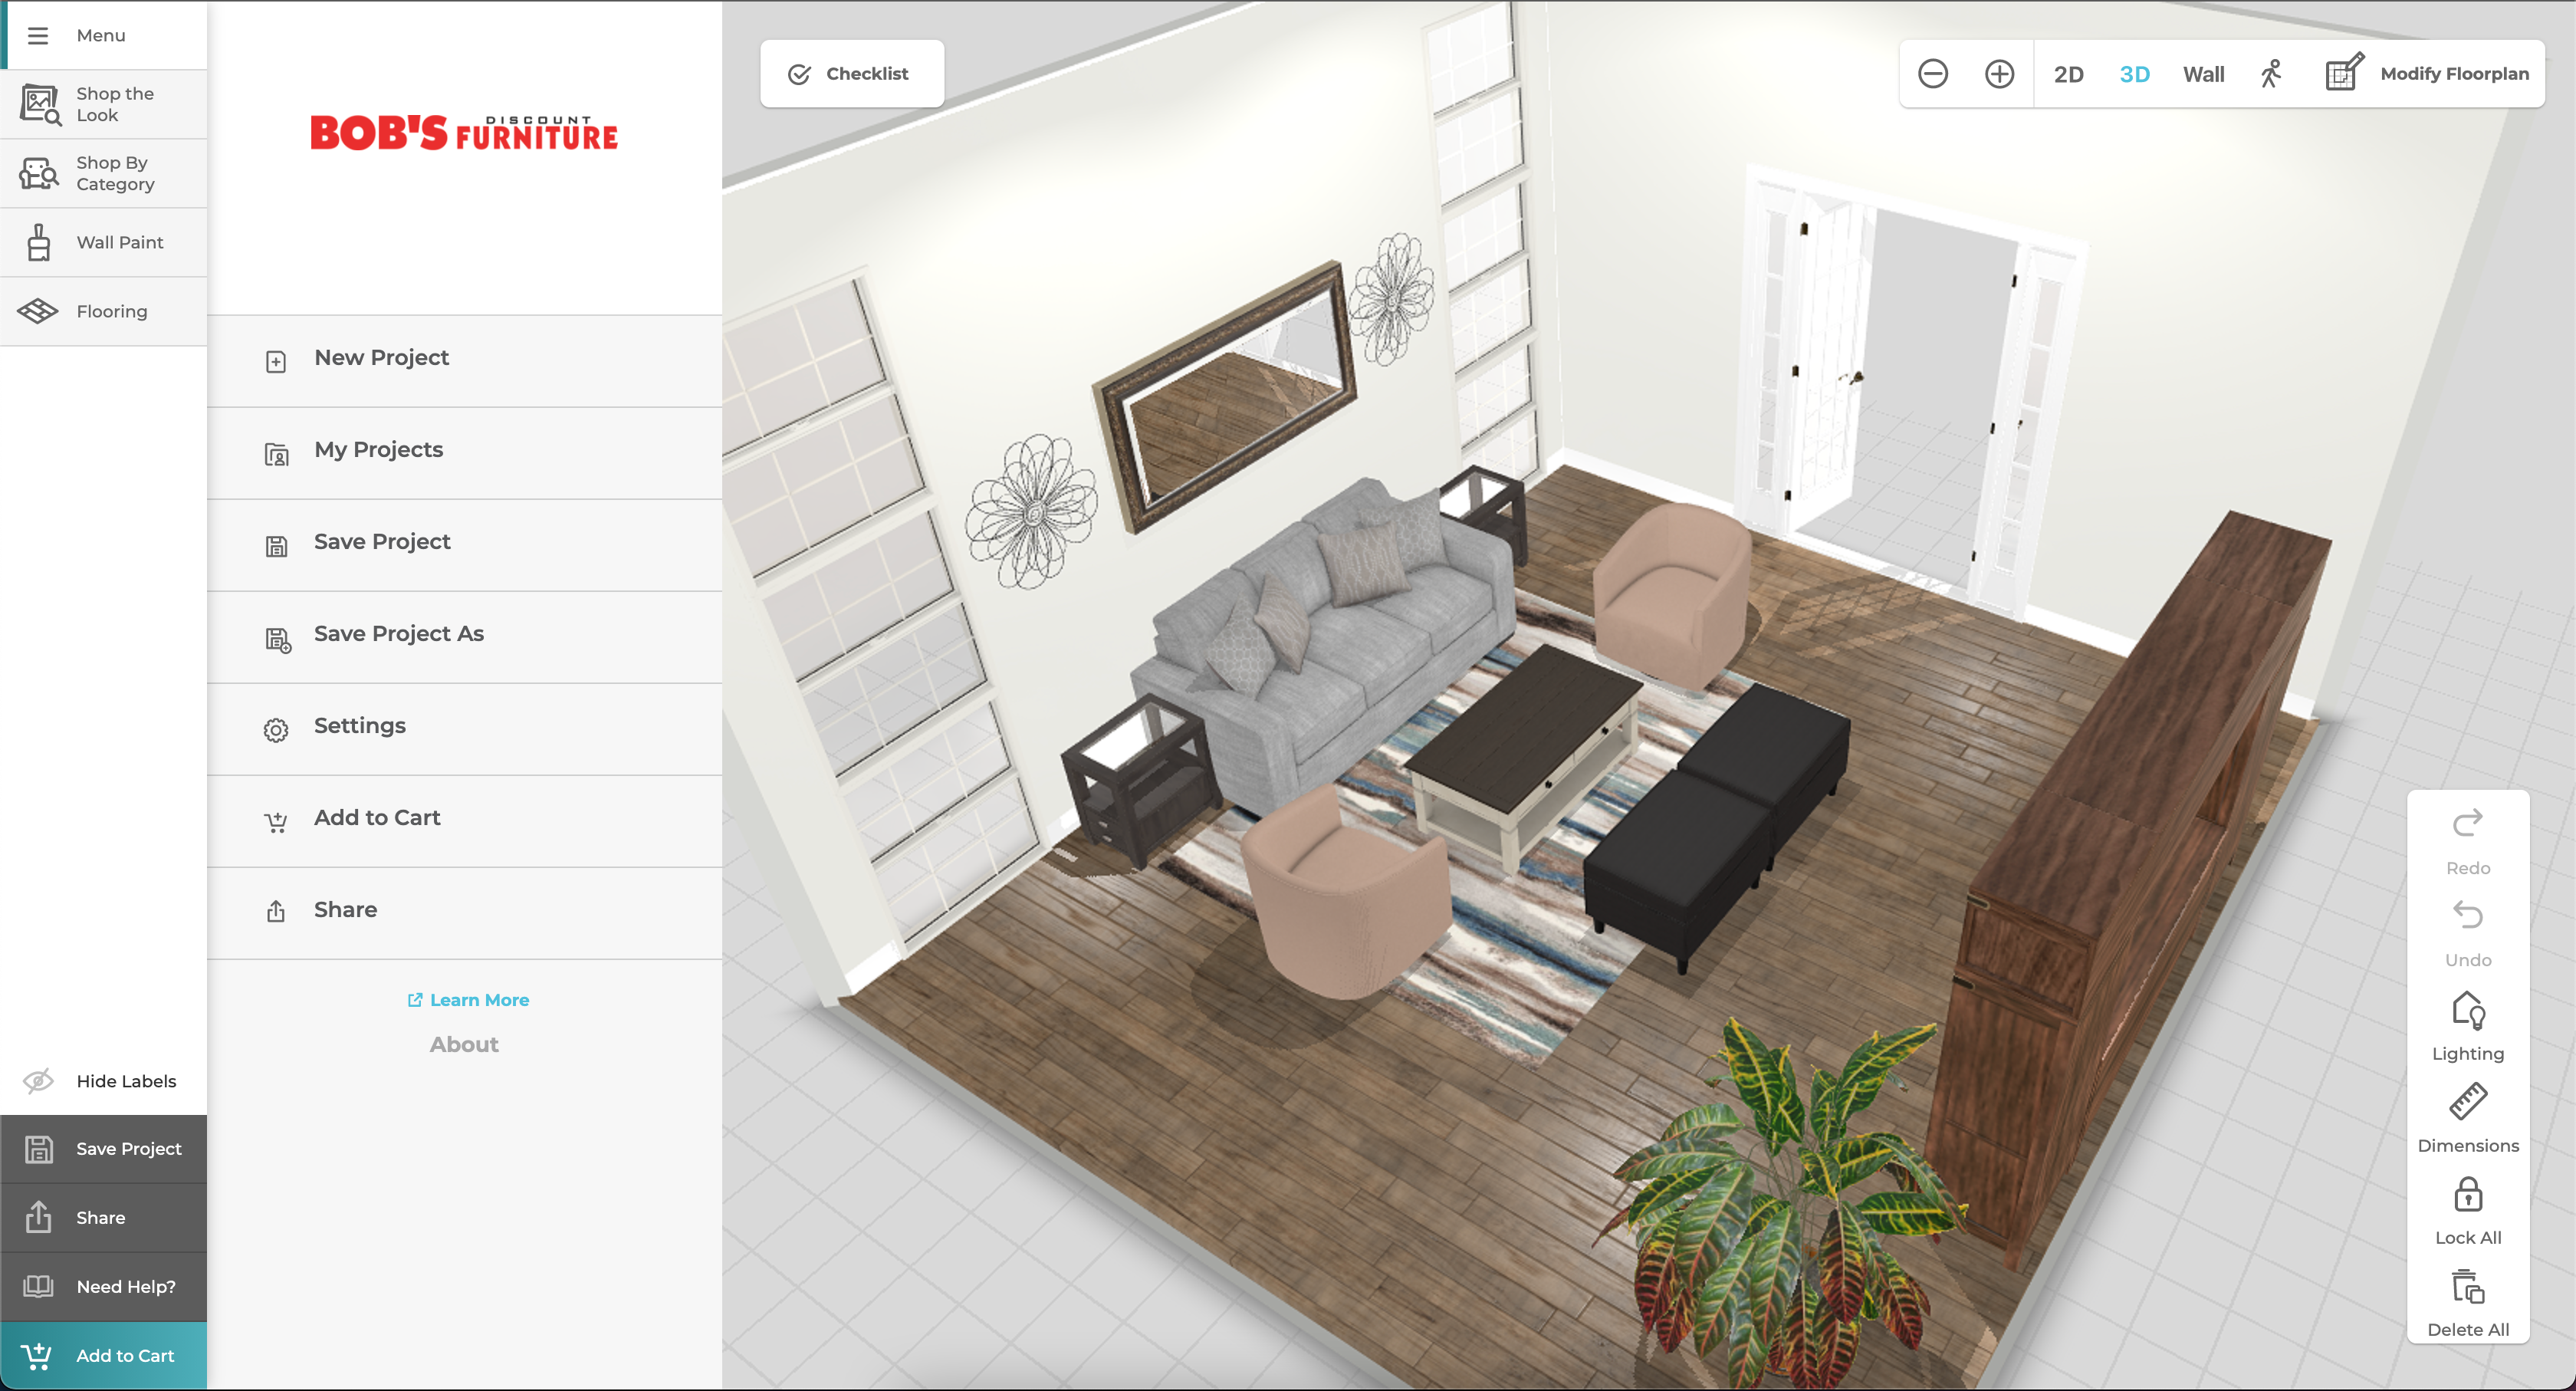 Left side of the window shows the menu of the application; the right side of the window shows a 3D view of the fully furnished room.